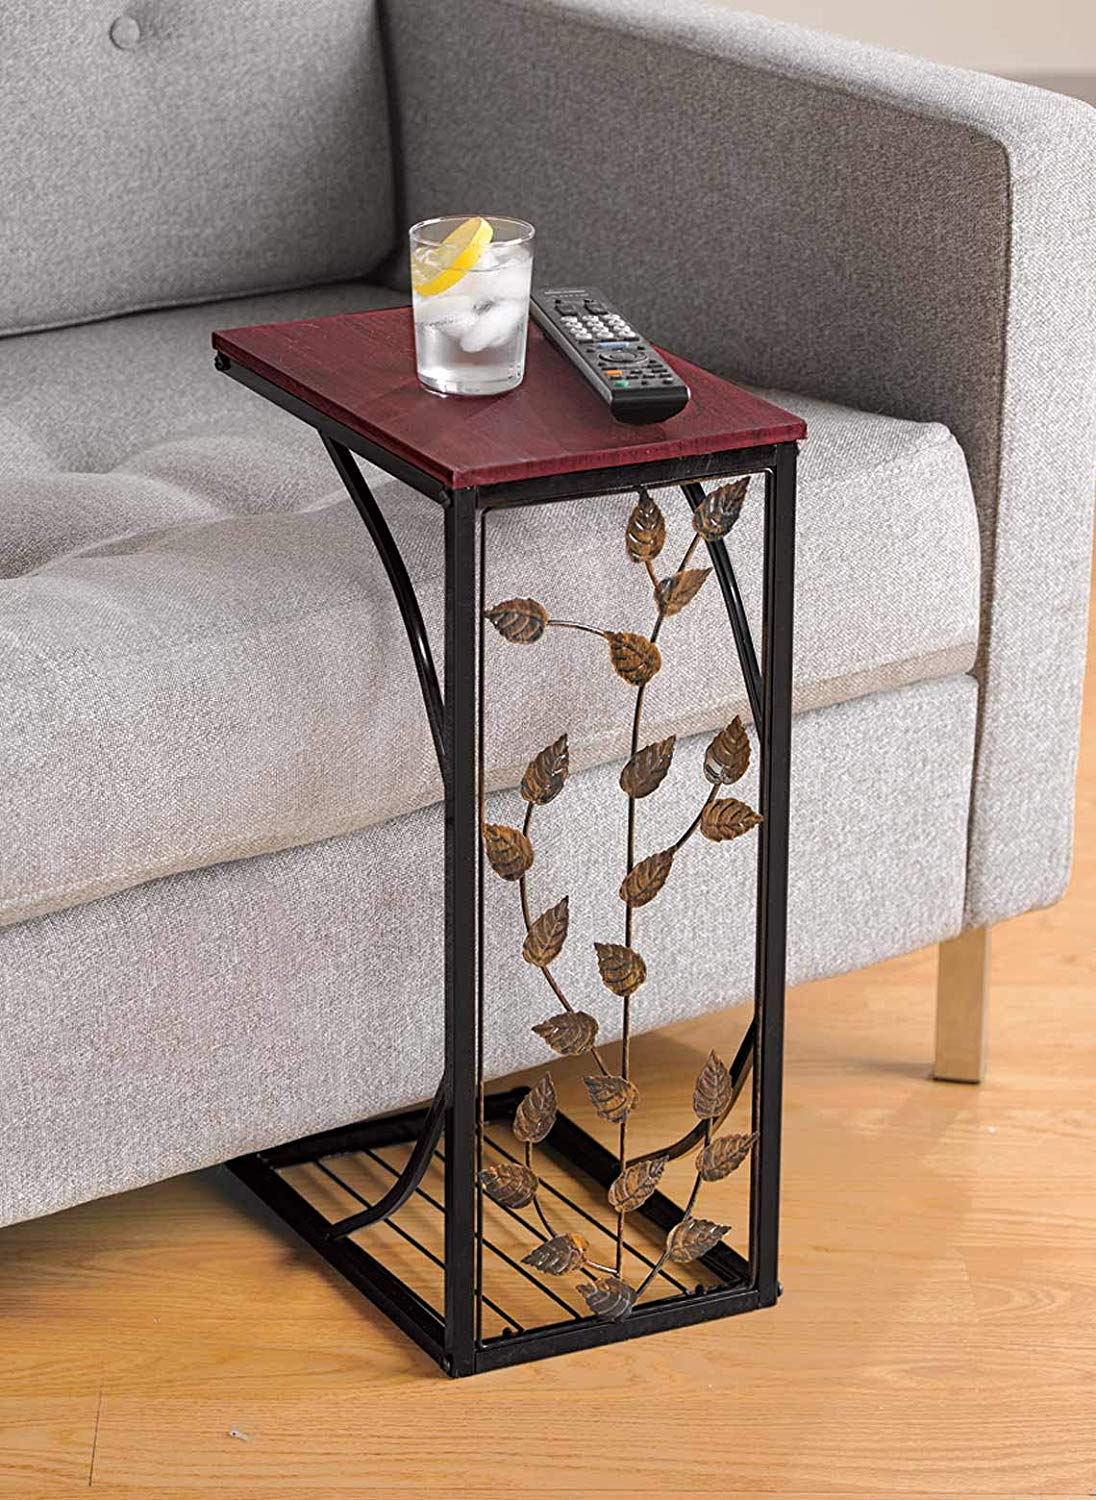 sofa side and end table small metal dark brown wood top with leaf design perfect for your living room slides chair recliner keep coaster furniture tables craigslist gold brass